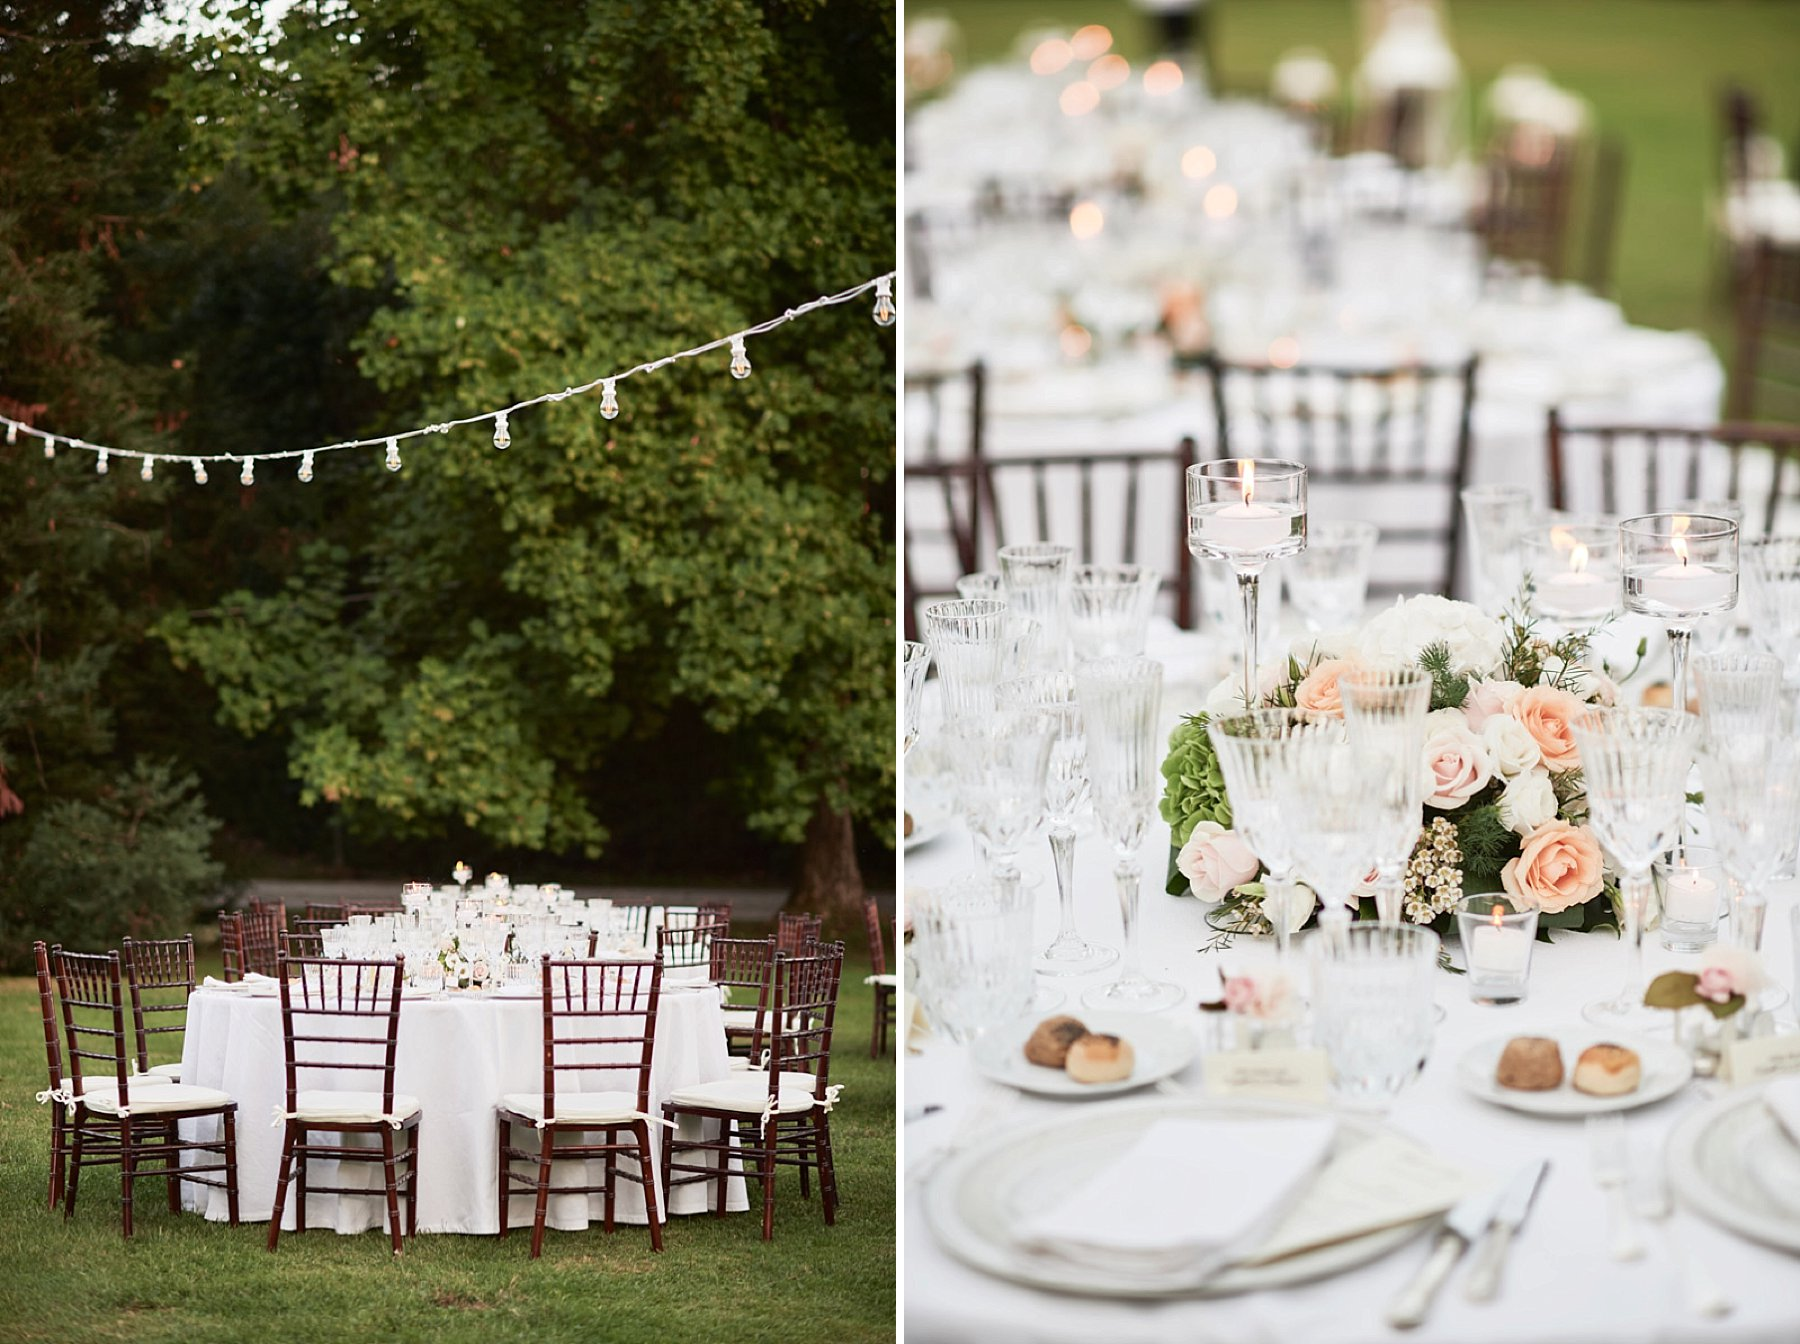 039-elegant-wedding-party-tuscany-villa-grabau